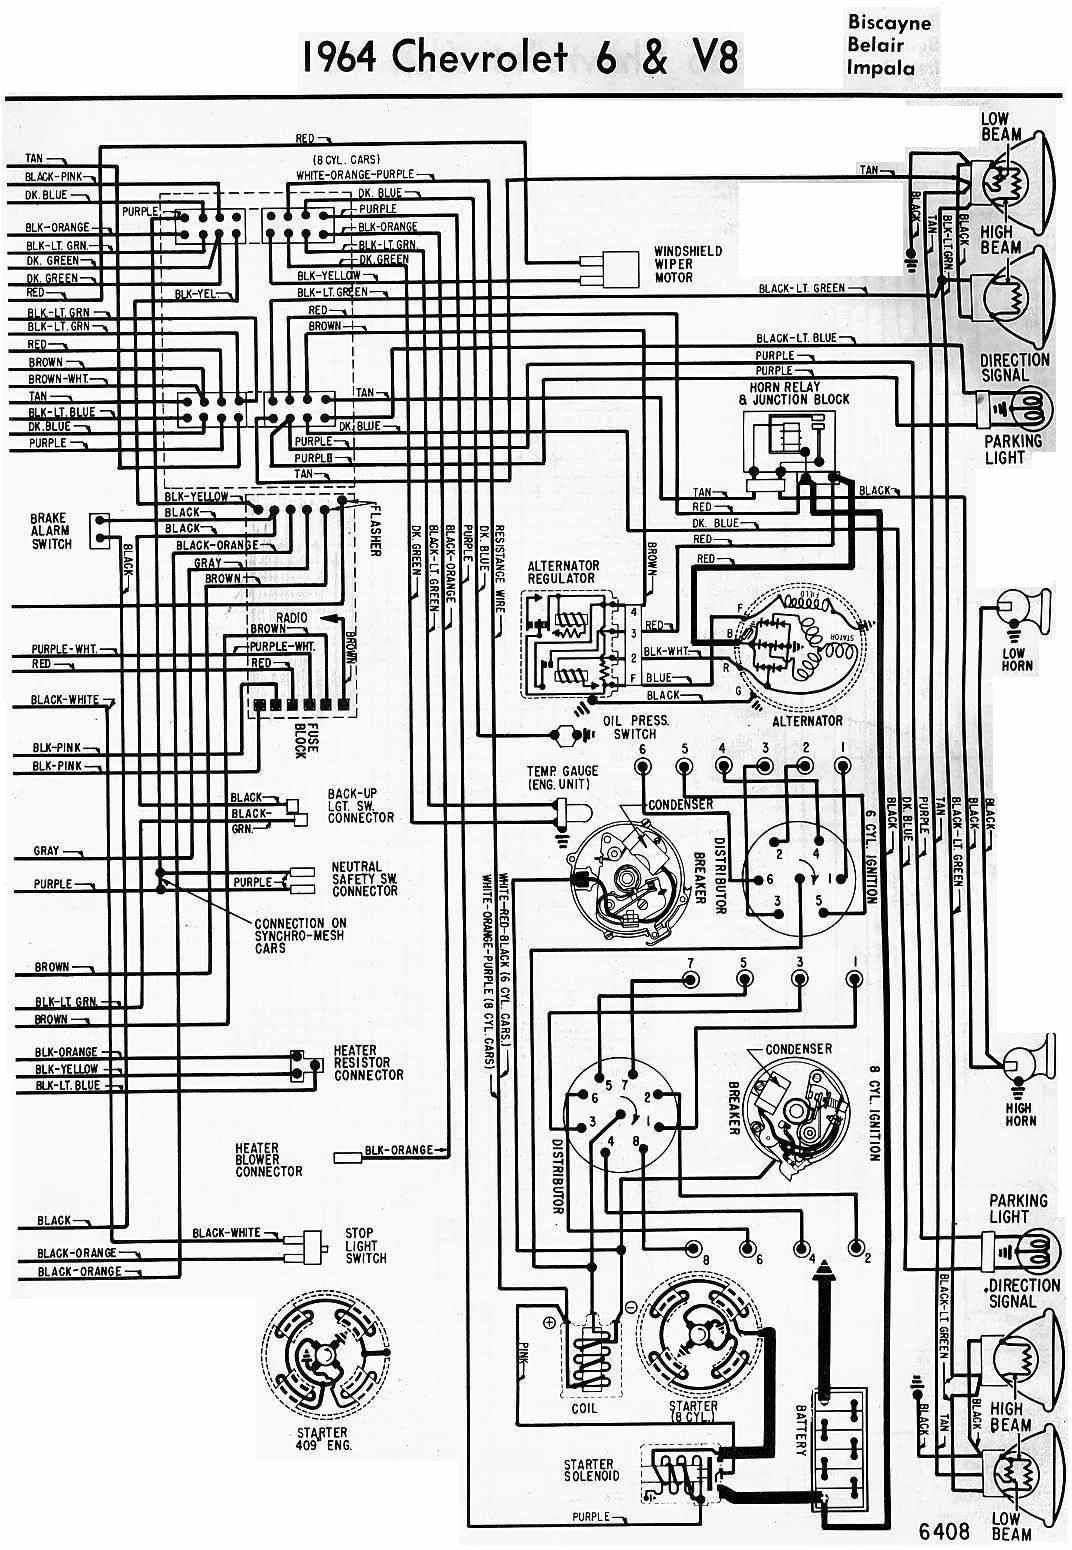 Electrical Wiring Diagram Of 1964 Chevrolet 6 And V8 | All